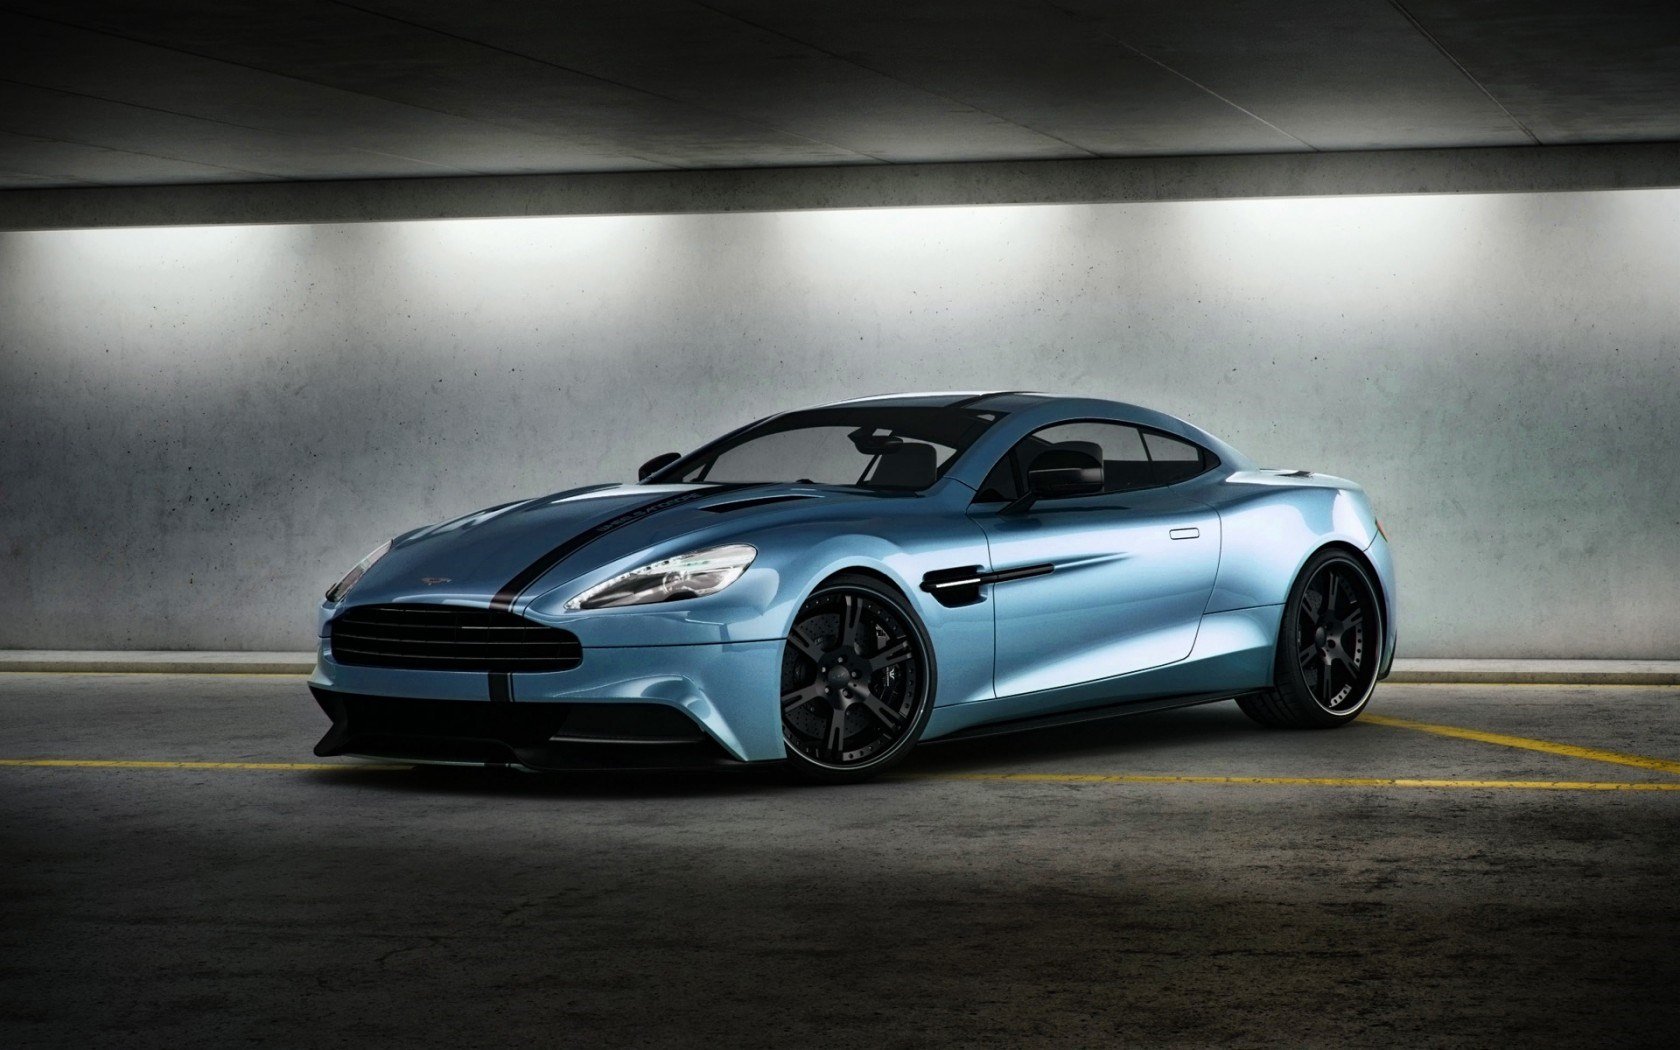 Aston martin vanquish wallpaper and background image 1680x1050 wallpapers id447686 publicscrutiny Image collections